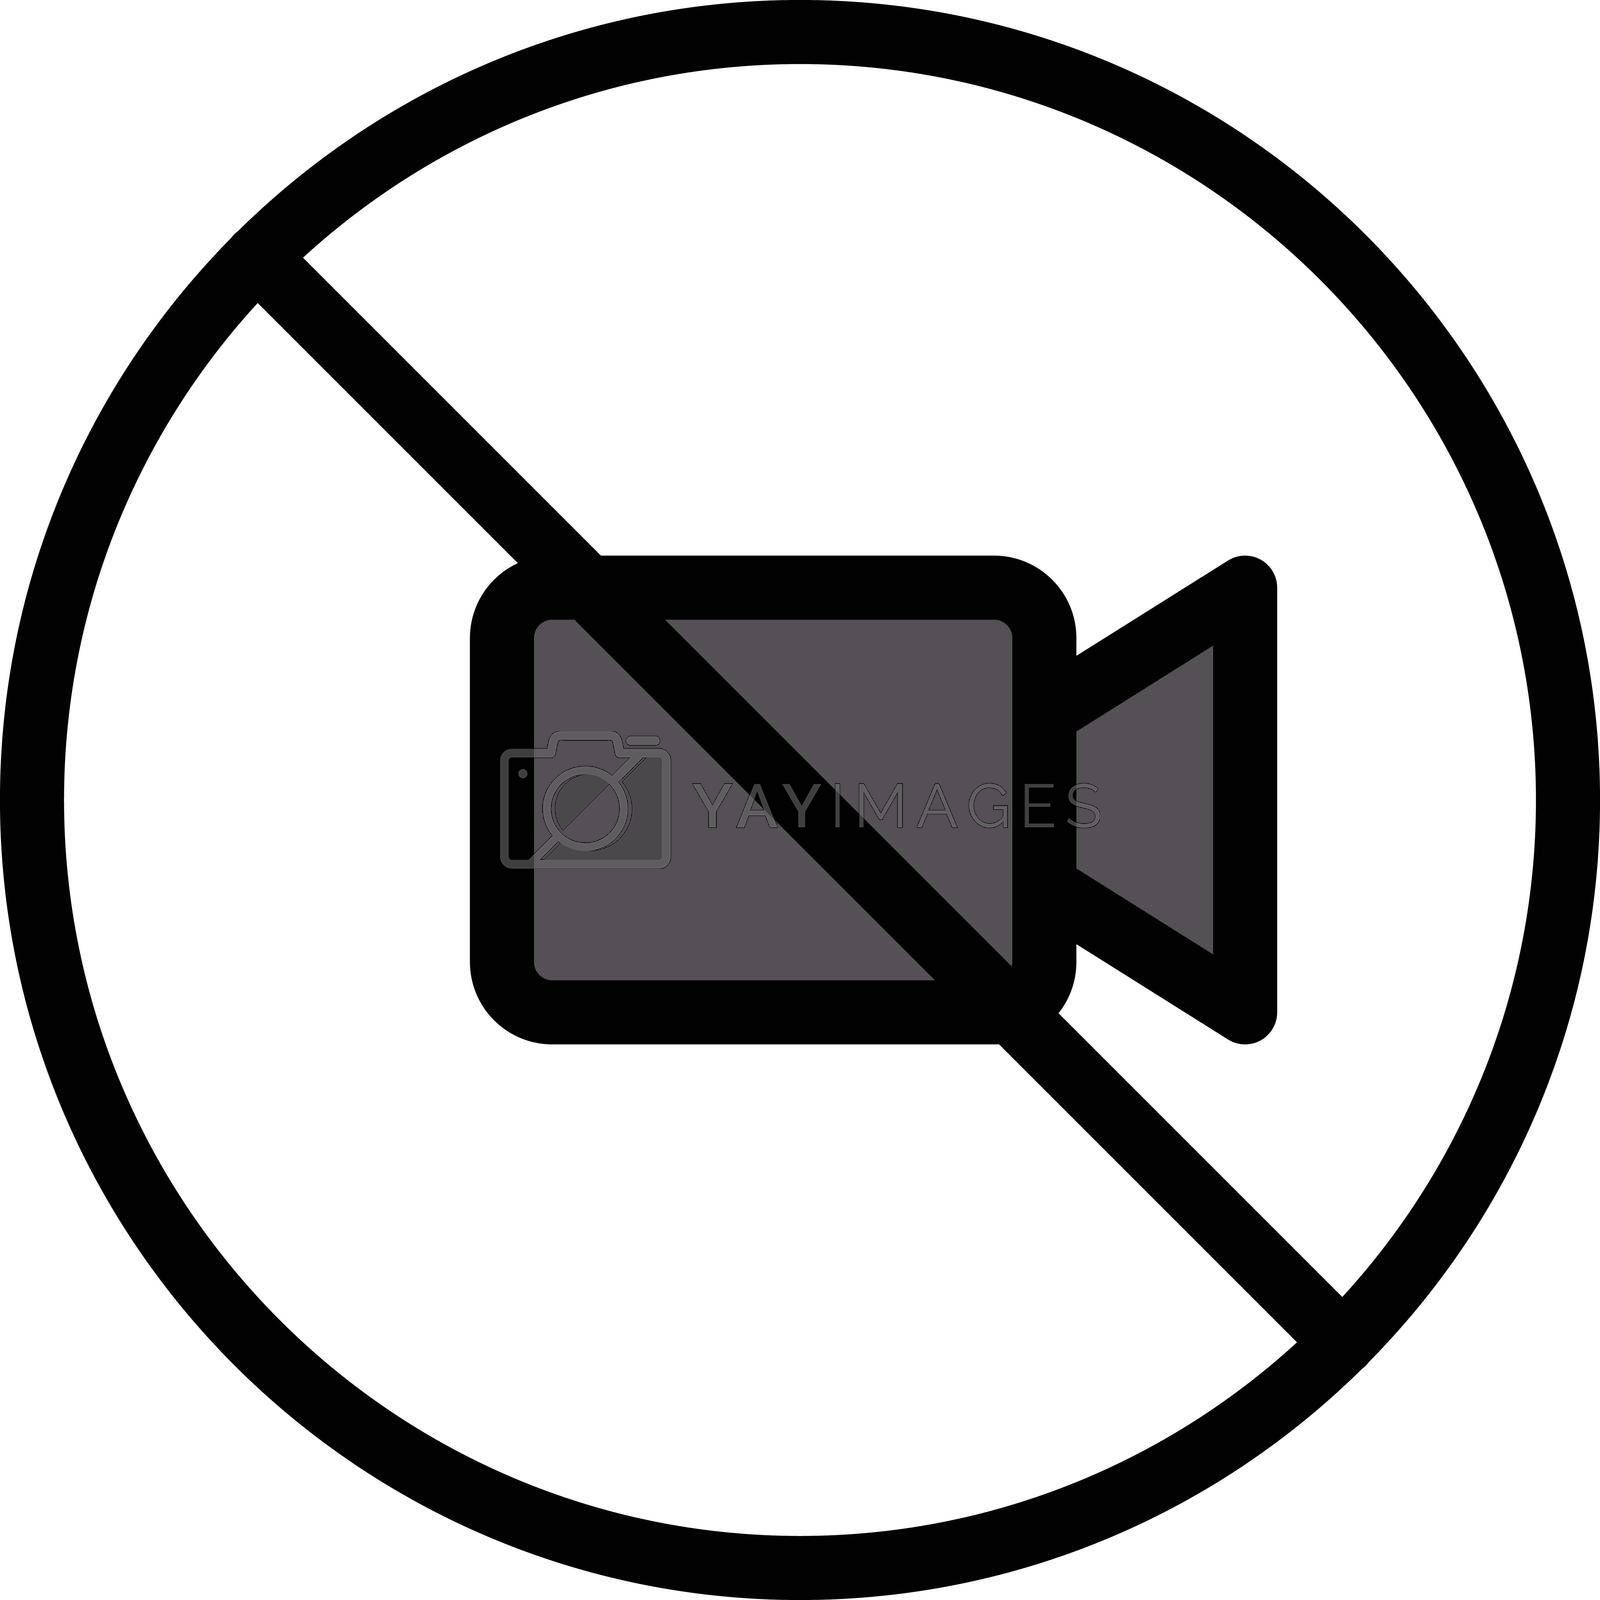 Royalty free image of video not allowed by vectorstall